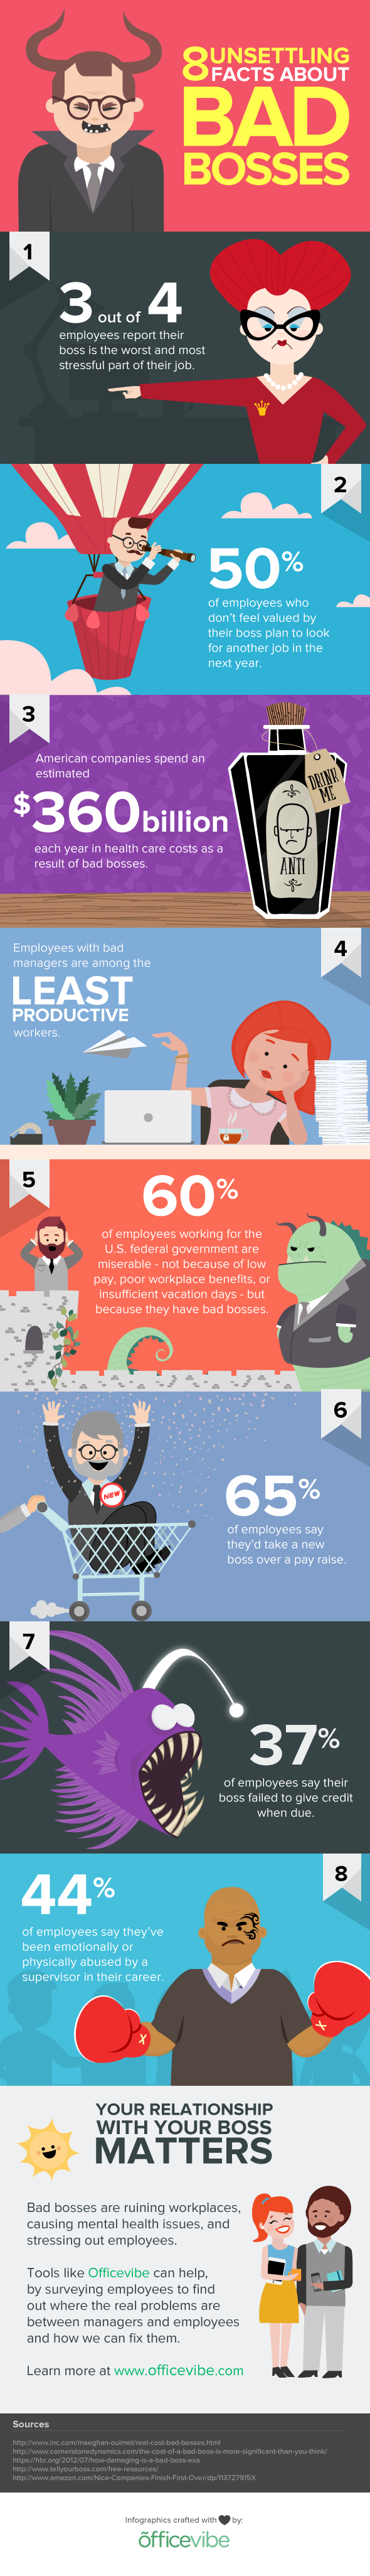 8 Facts About Your Bad Boss